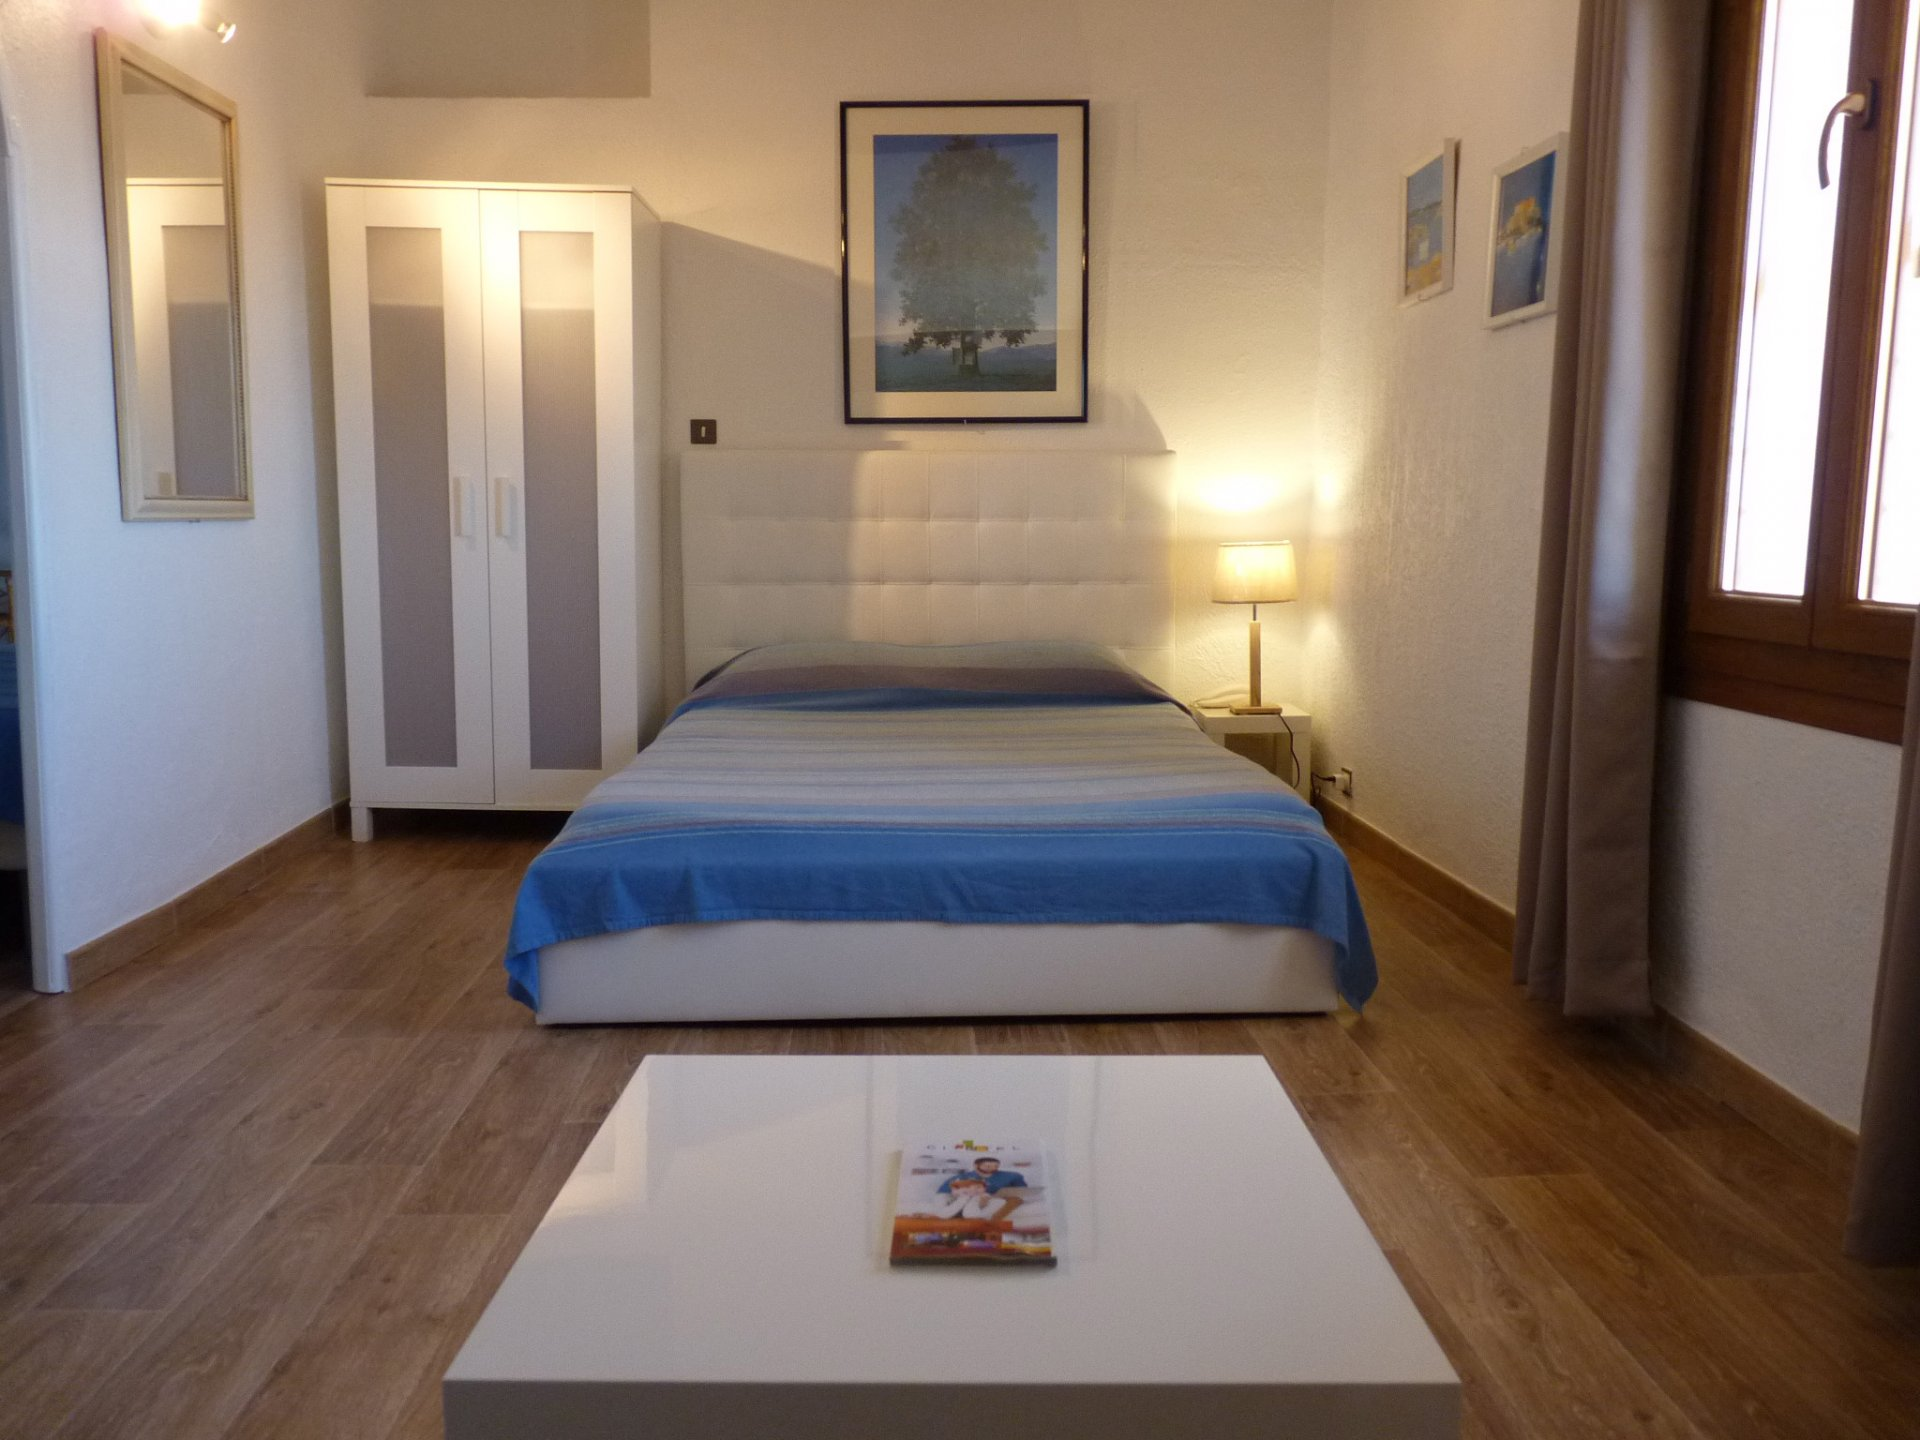 CHANGING YOUR LIFE: a small hotel in a good location, do you like it ? SALE WALLS AND BOTTOMS.